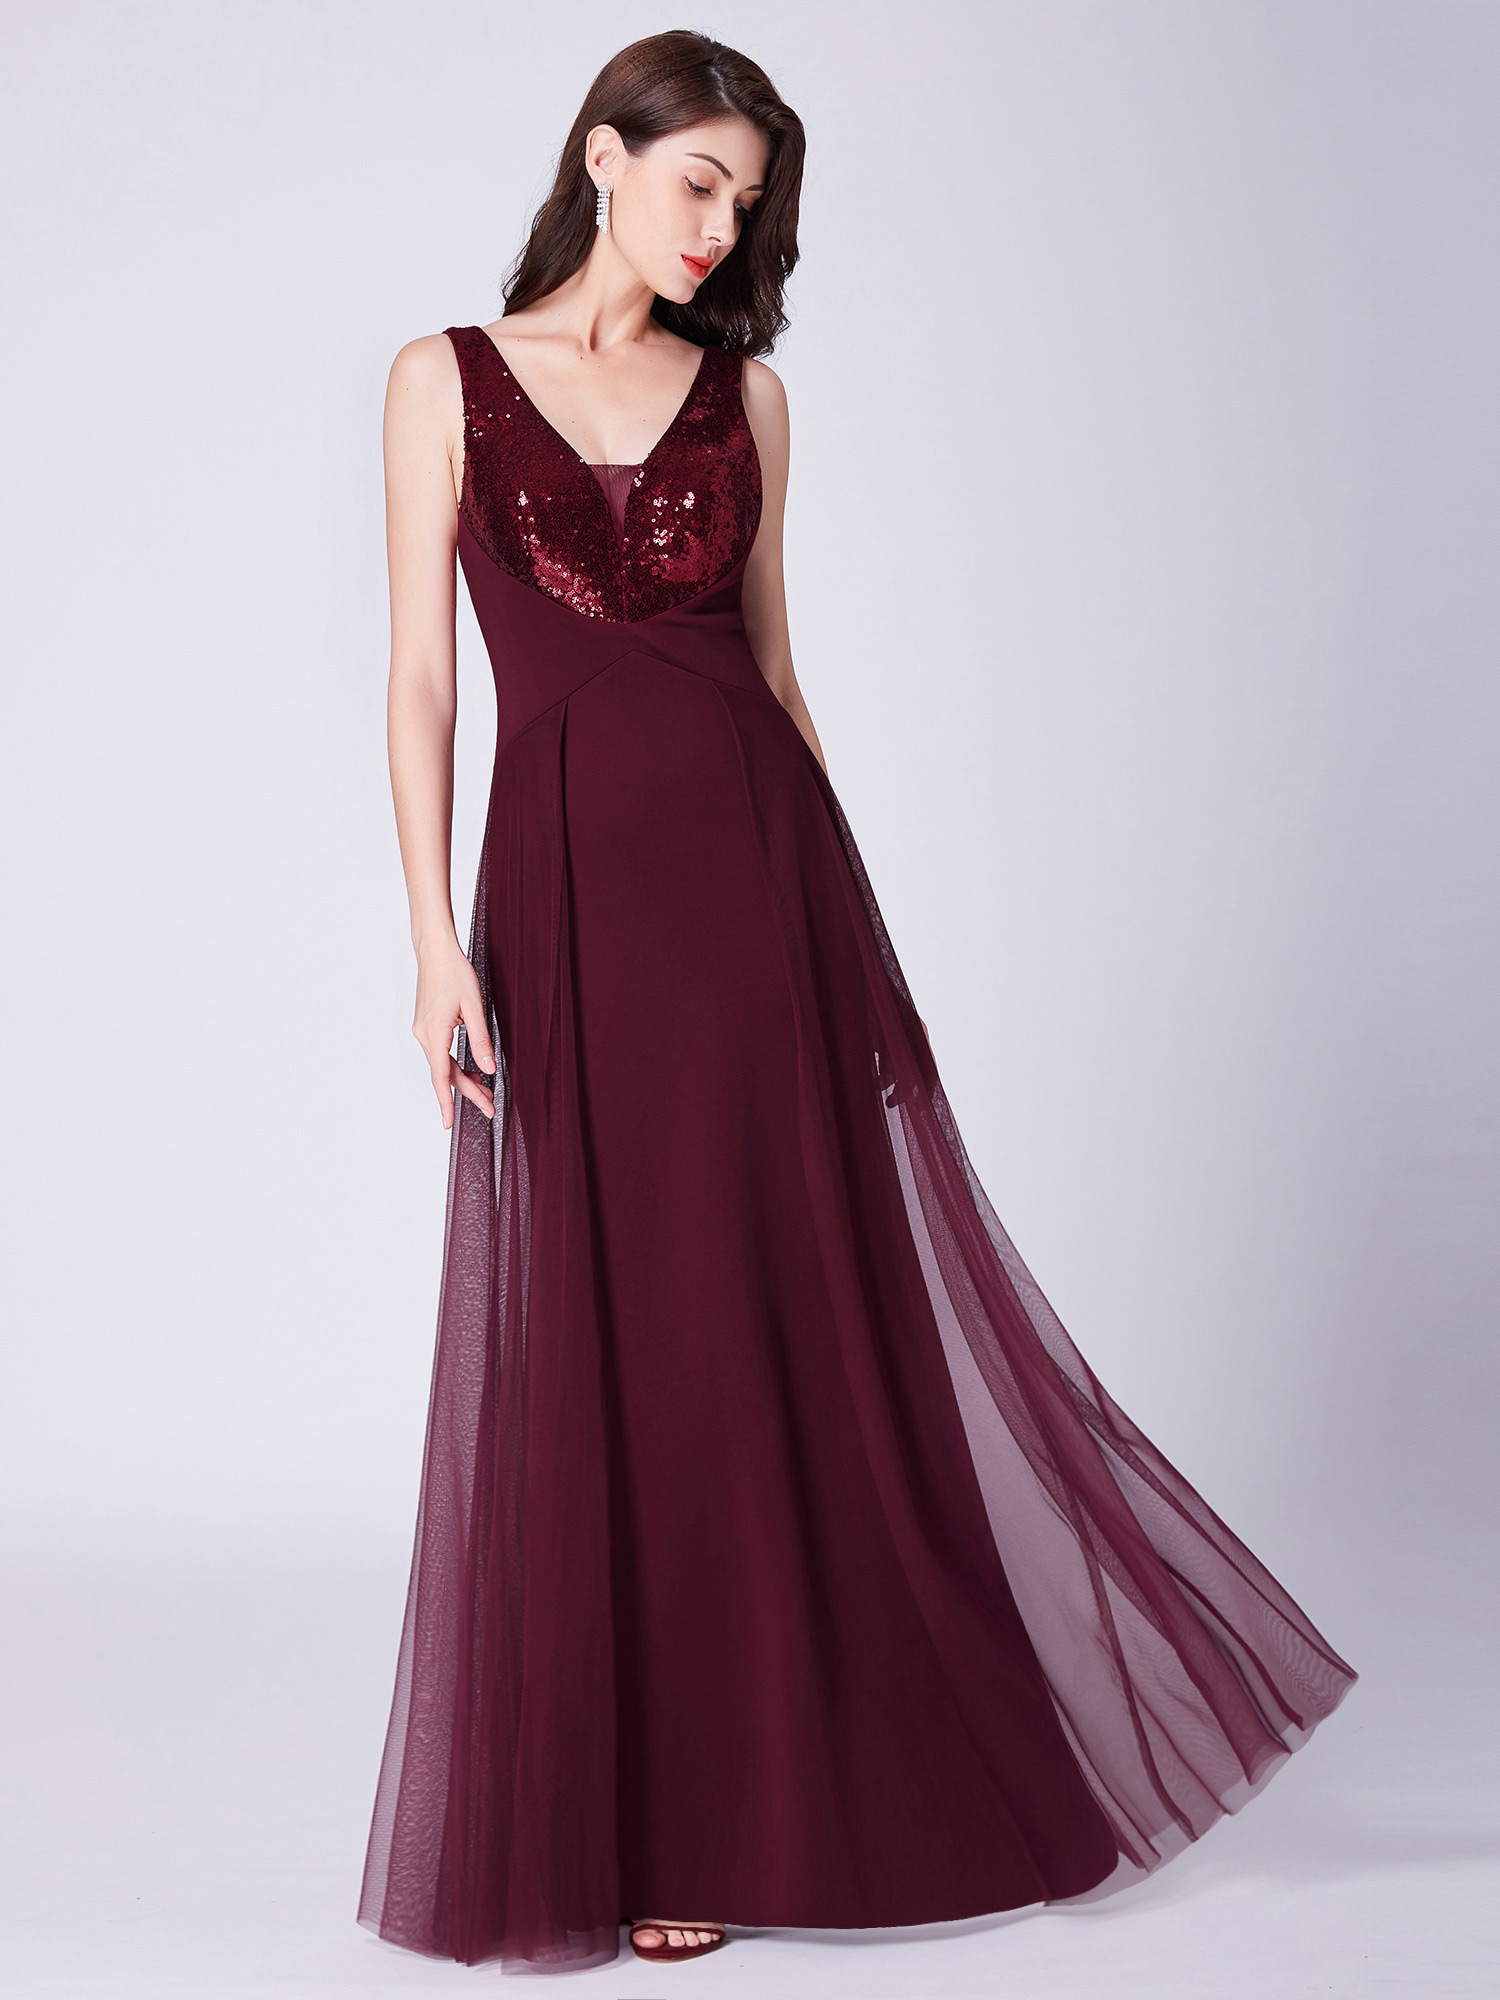 Ever-Pretty-US-Long-Sequins-Formal-Evening-Dresses-Cocktail-Party-Prom-Gown-7453 thumbnail 11